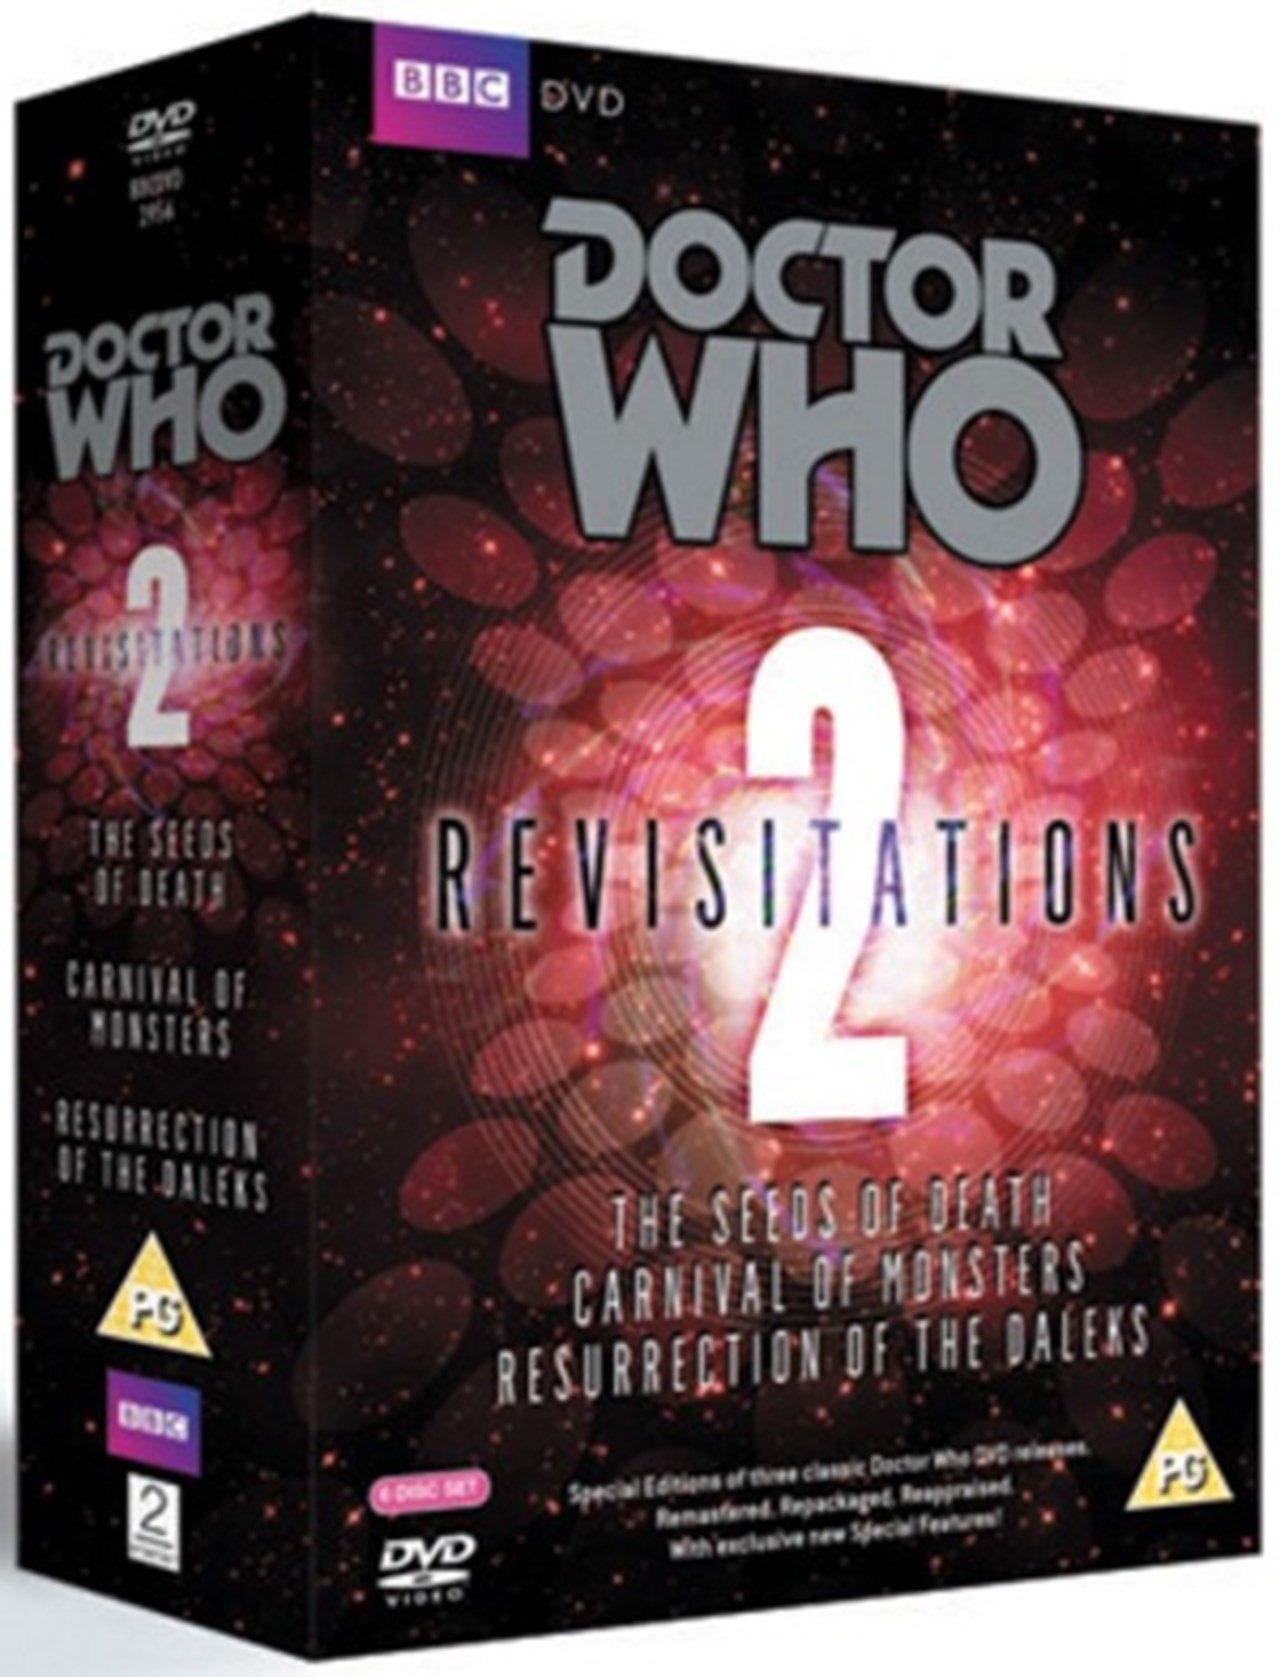 Doctor Who: Revisitations 2 - 1